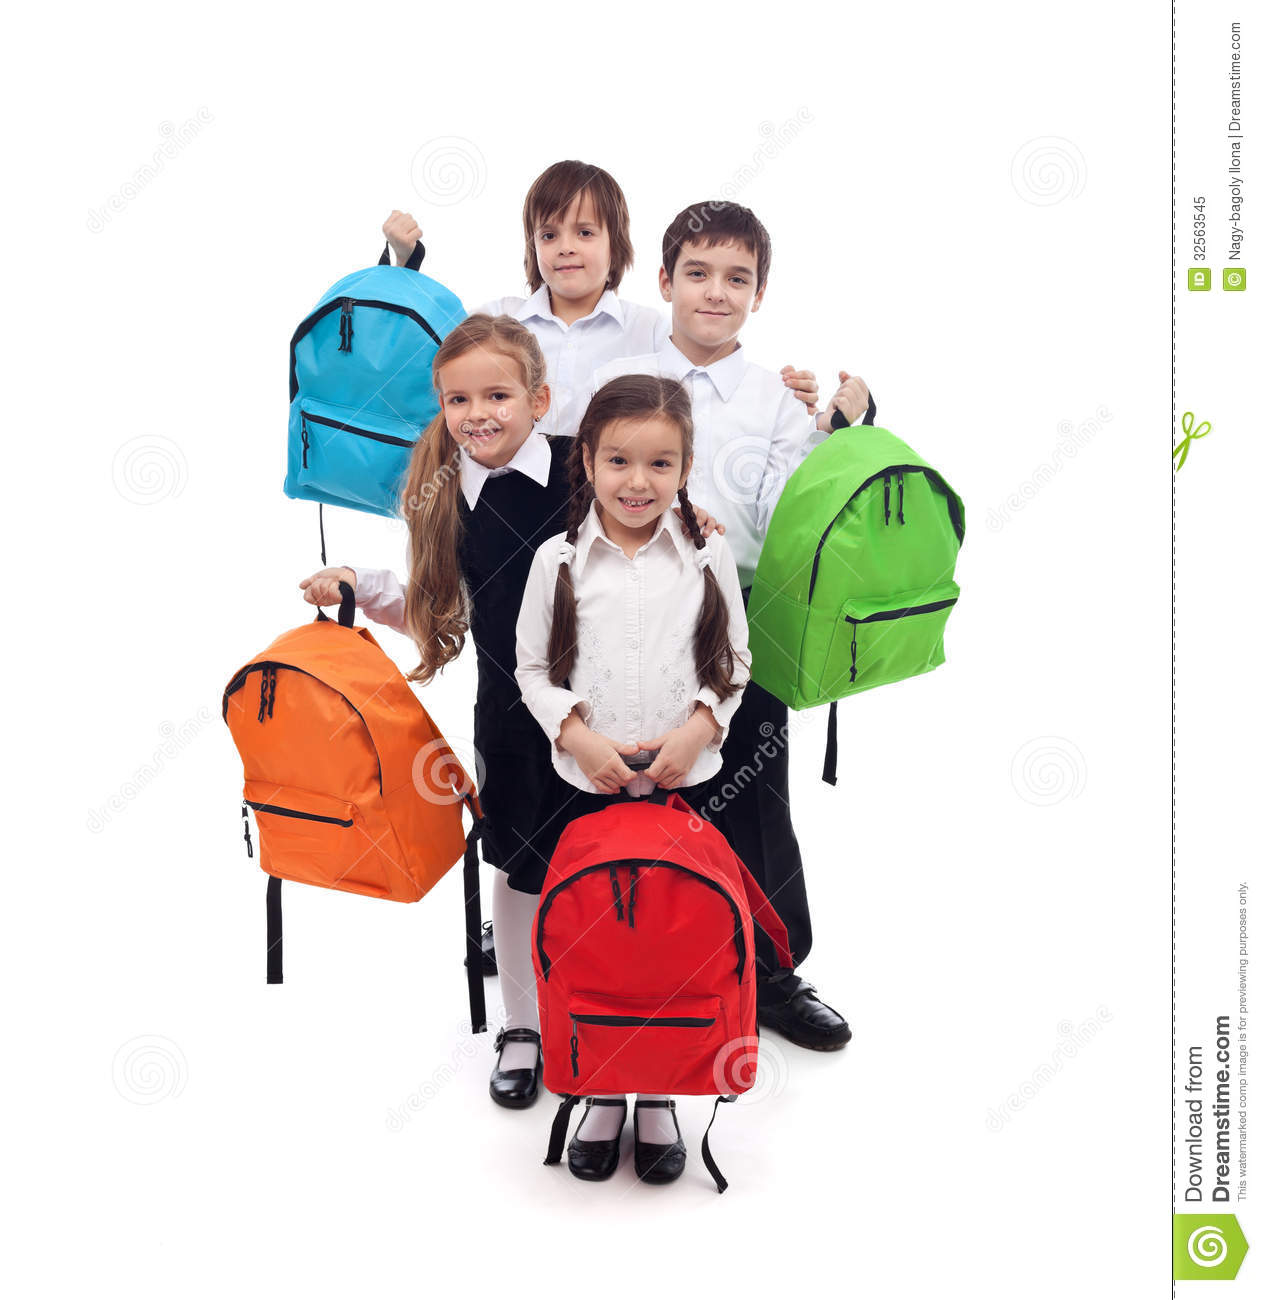 group of happy kids with colorful school bags royalty free stock photo - School Pictures For Kids